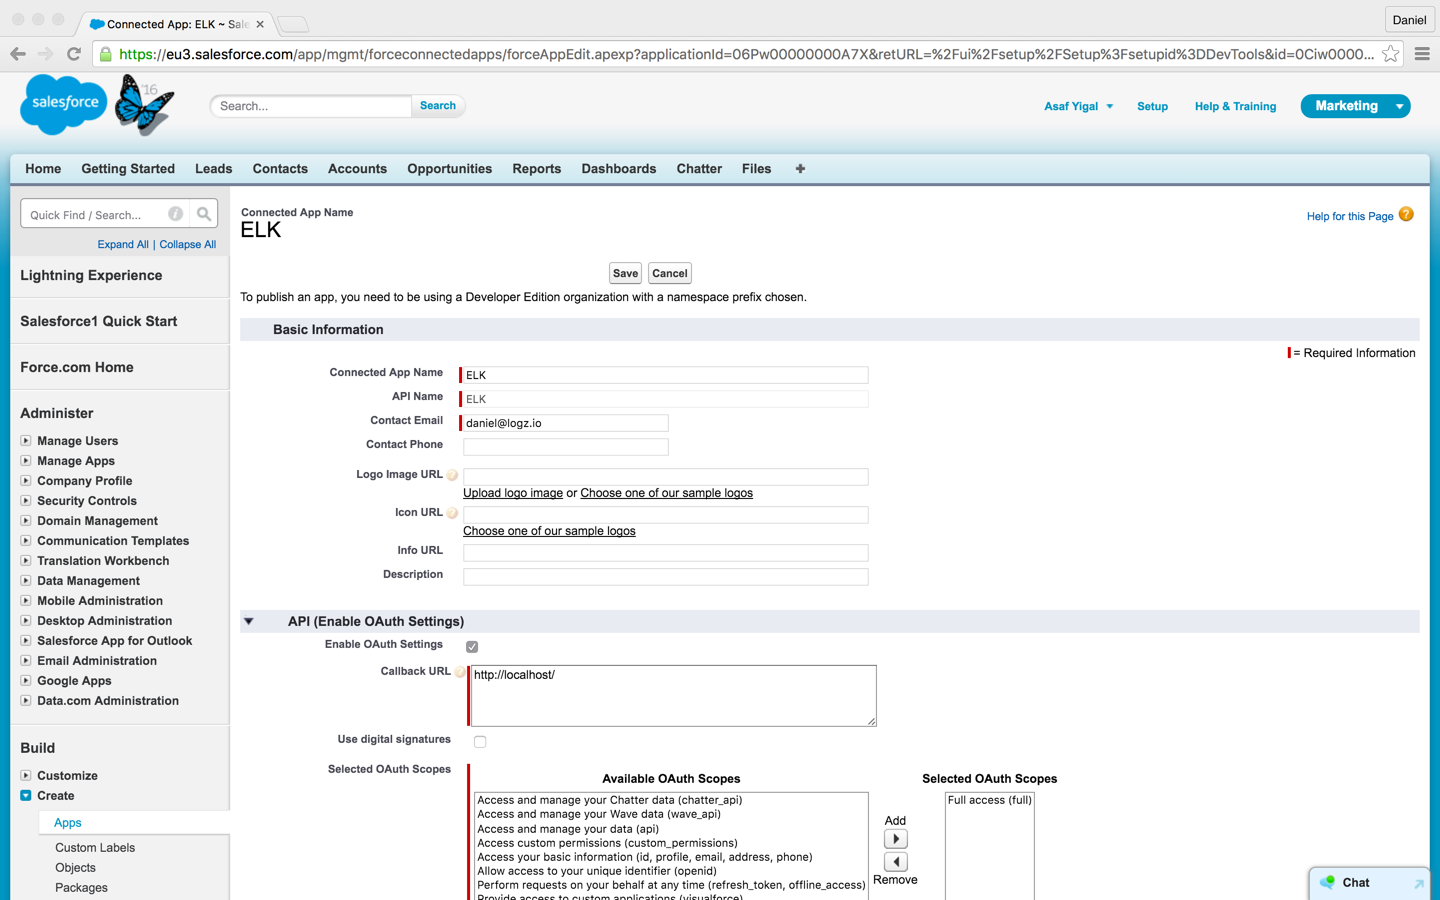 Salesforce: How To Analyze Salesforce Data With The ELK Stack